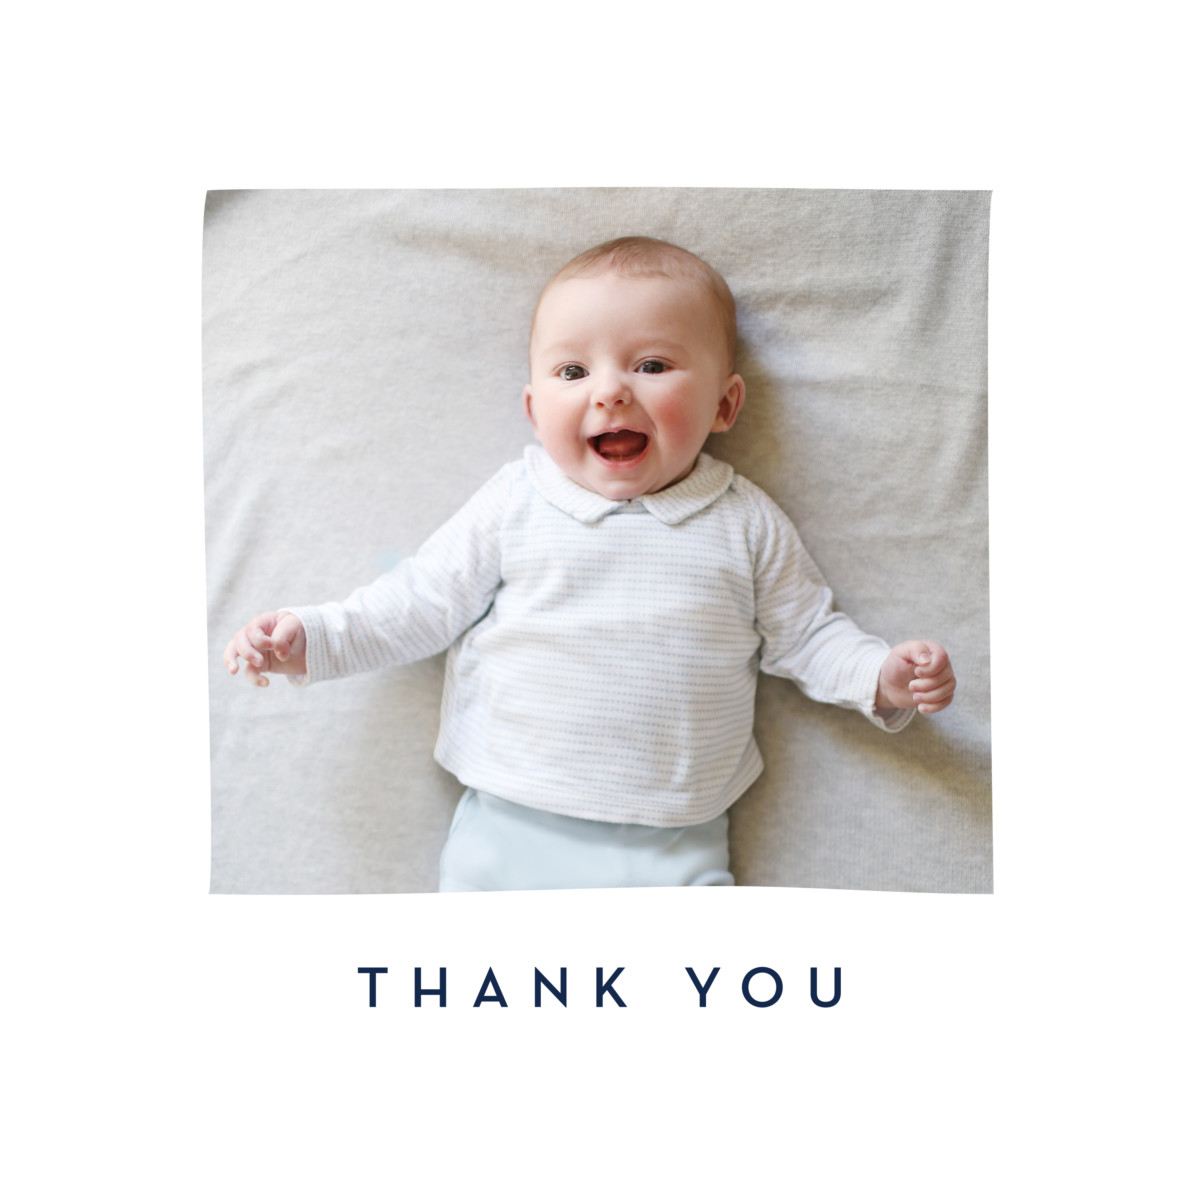 Baby Thank You Cards Floral Ribbon - Atelier Rosemood